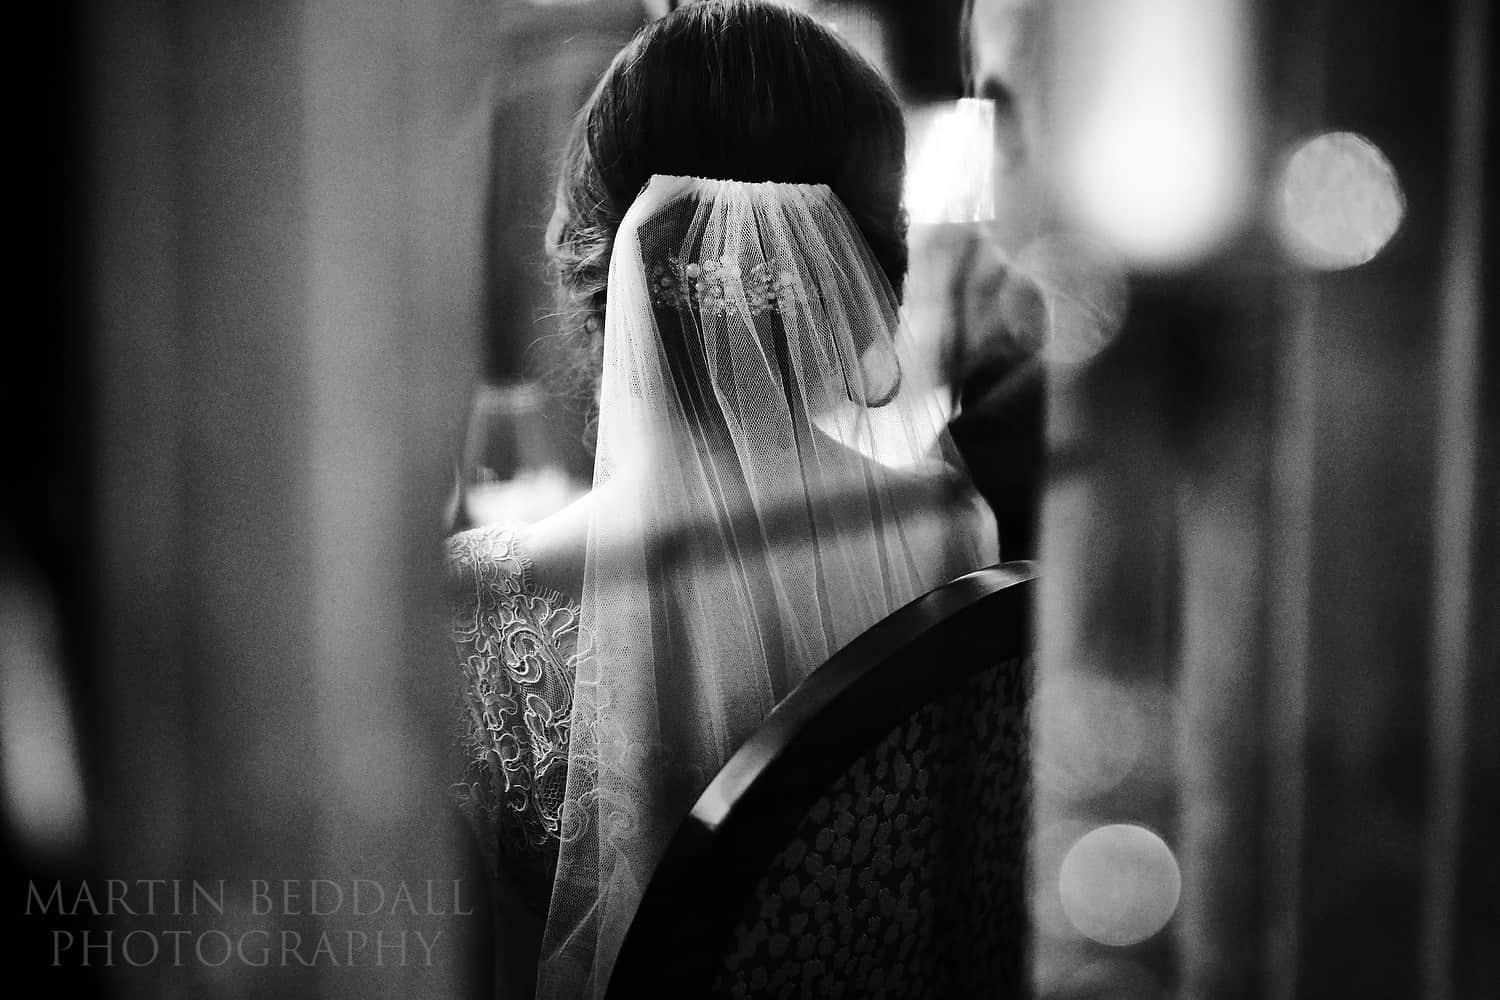 Detail of the bride shot through a window using a Sigma 105mm f1.4 lens on a Sony A9